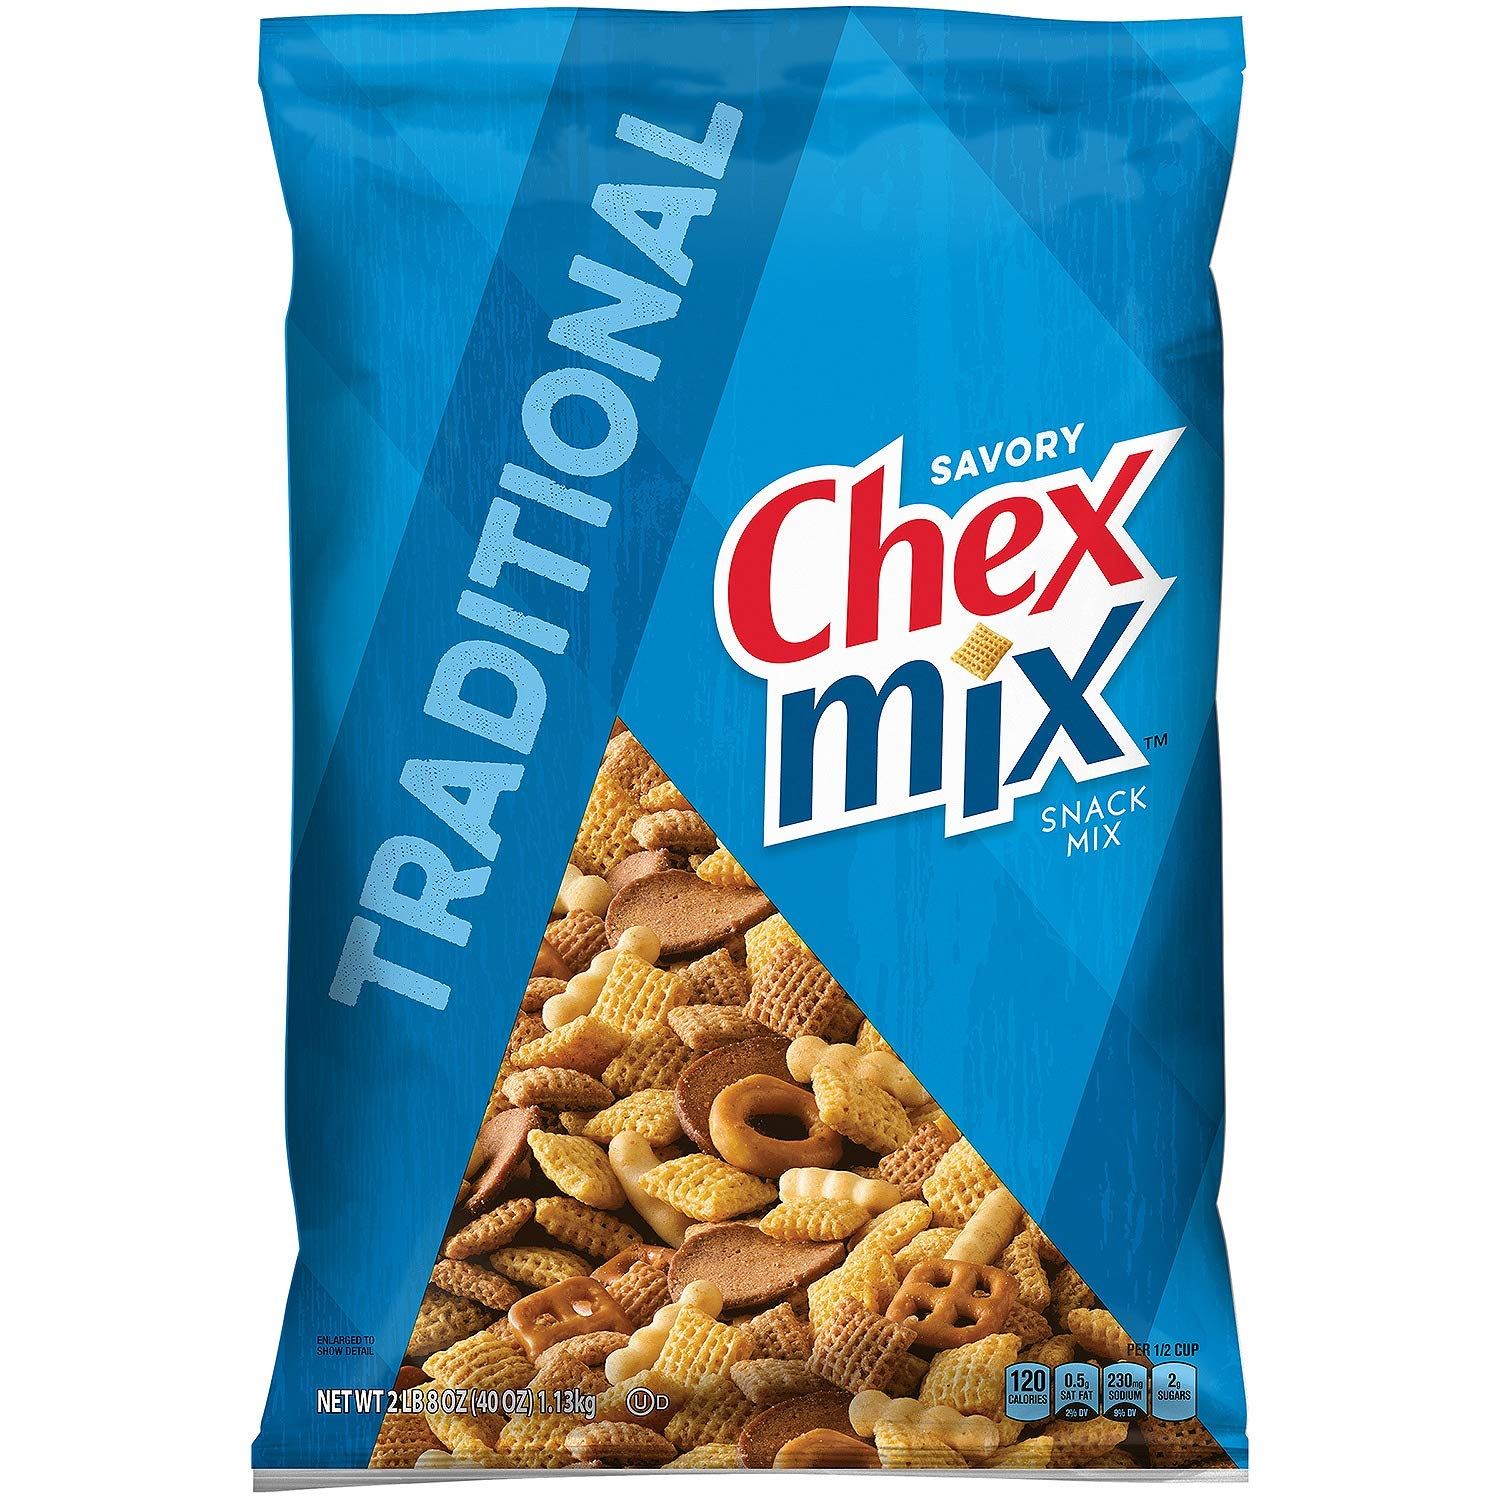 Chex Mix Traditional Snack Mix, Original, 40 Ounce (Pack of 3)